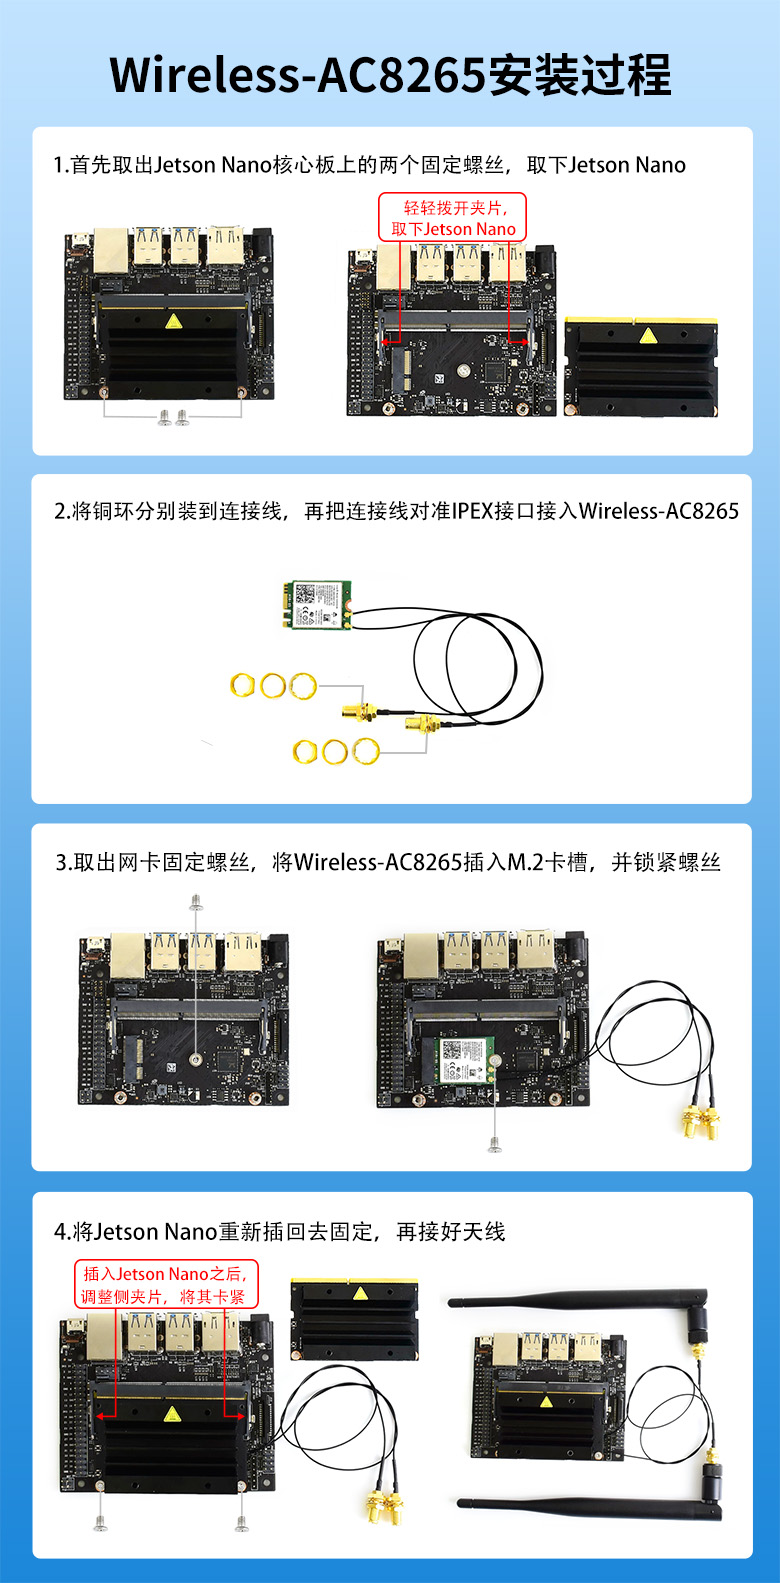 Wireless-AC8265-Assemble_780.jpg